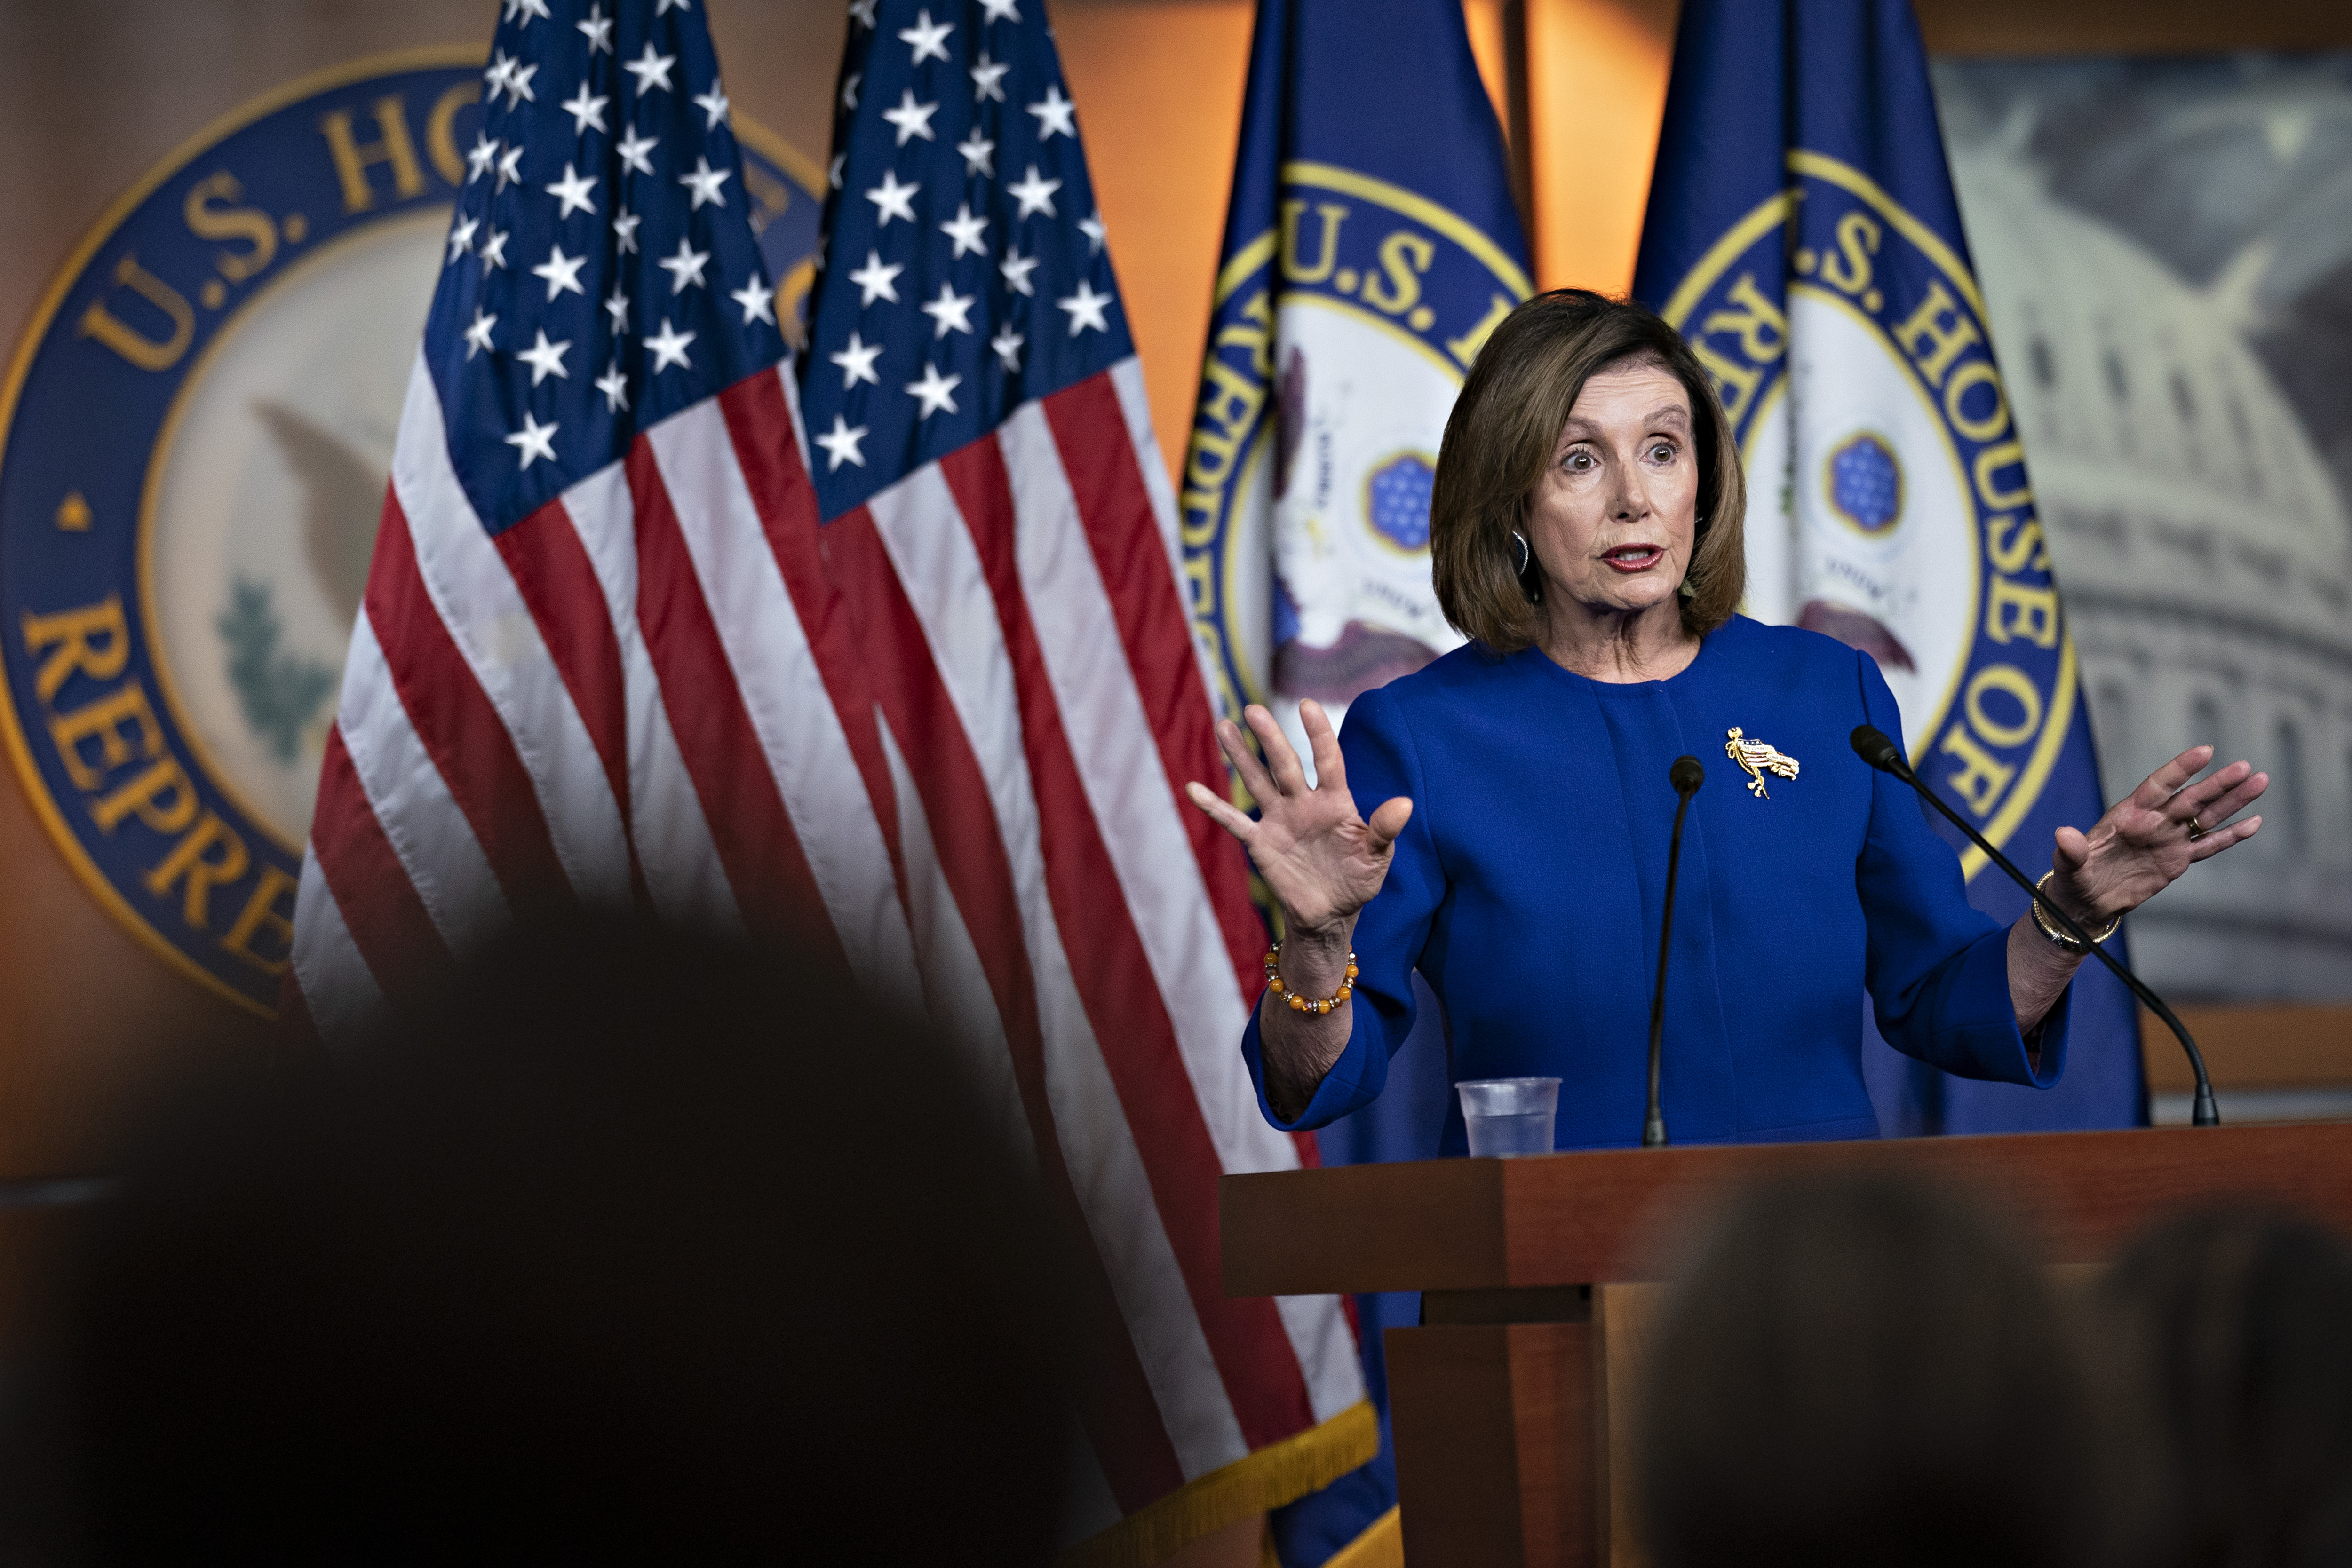 Nancy Pelosi, speaks during a news conference on Capitol Hill in Washington, D.C. on Jan. 9, 2020.